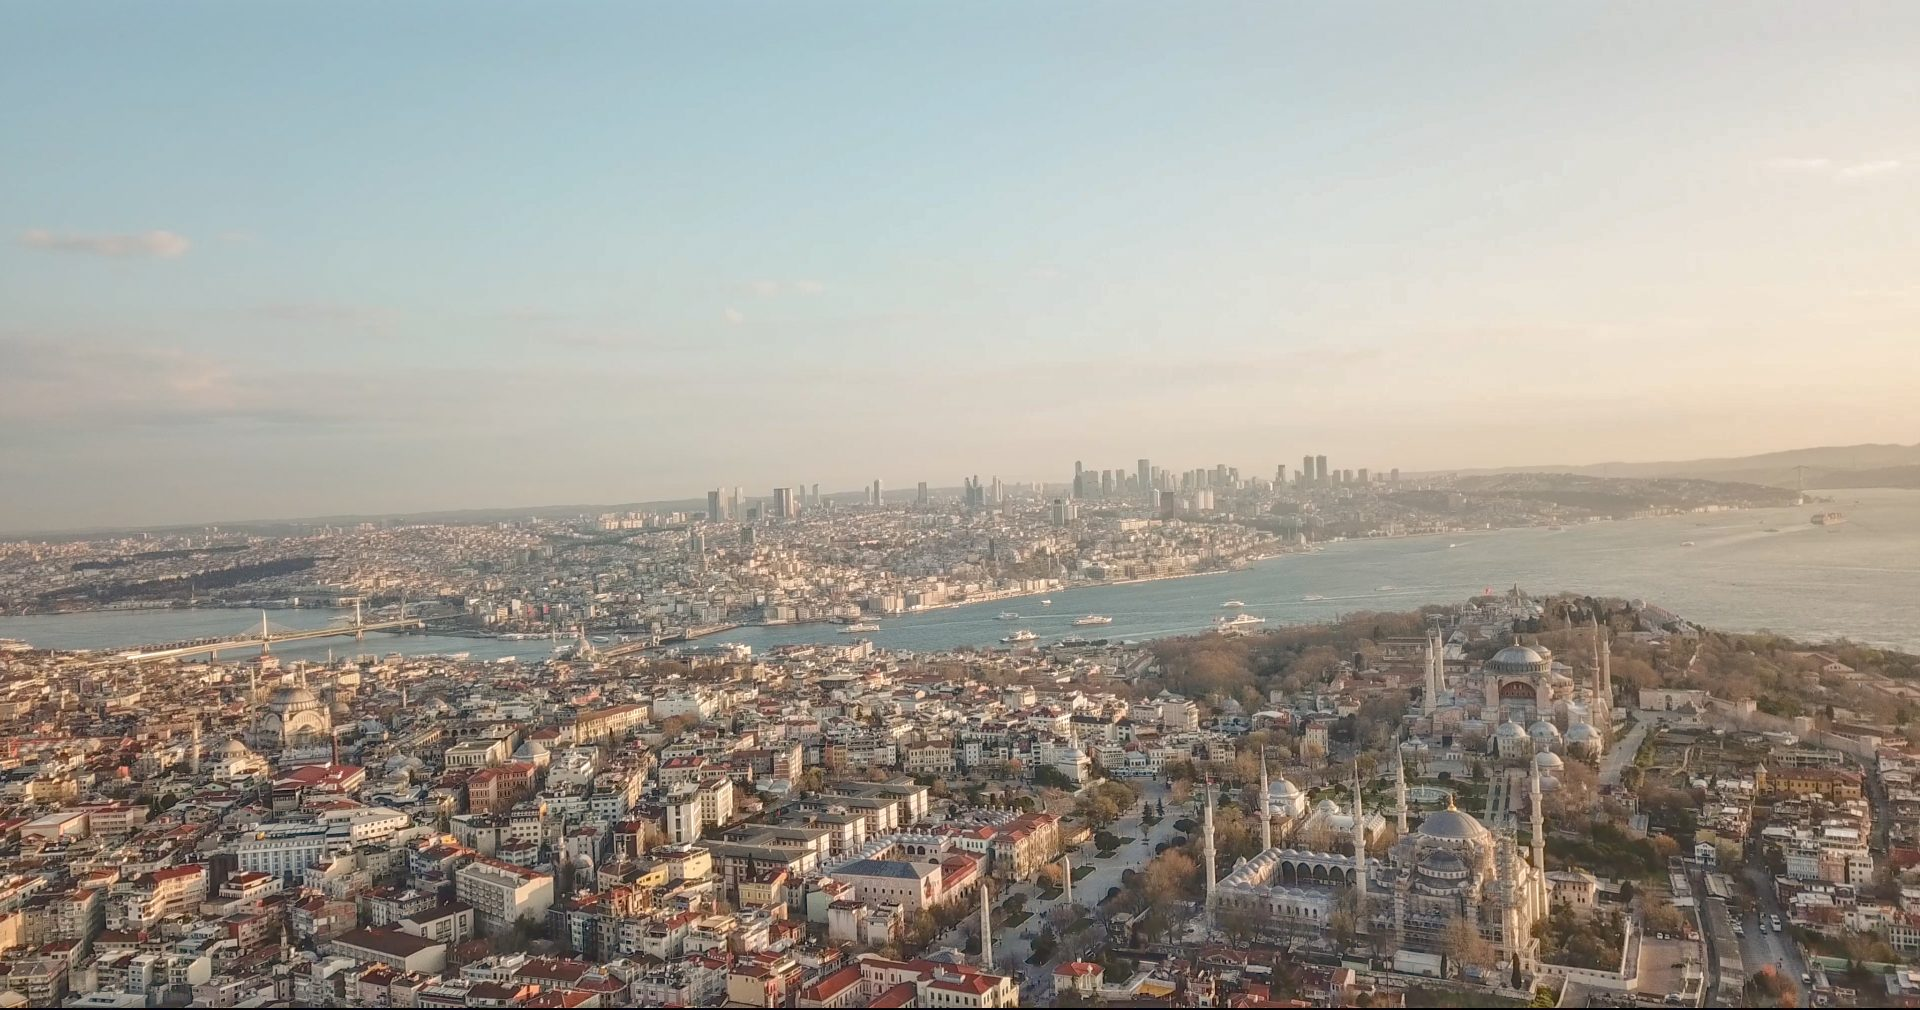 VIDEO: SULTANAHMED, LA JOYA DE ESTAMBUL (TURQUÍA)